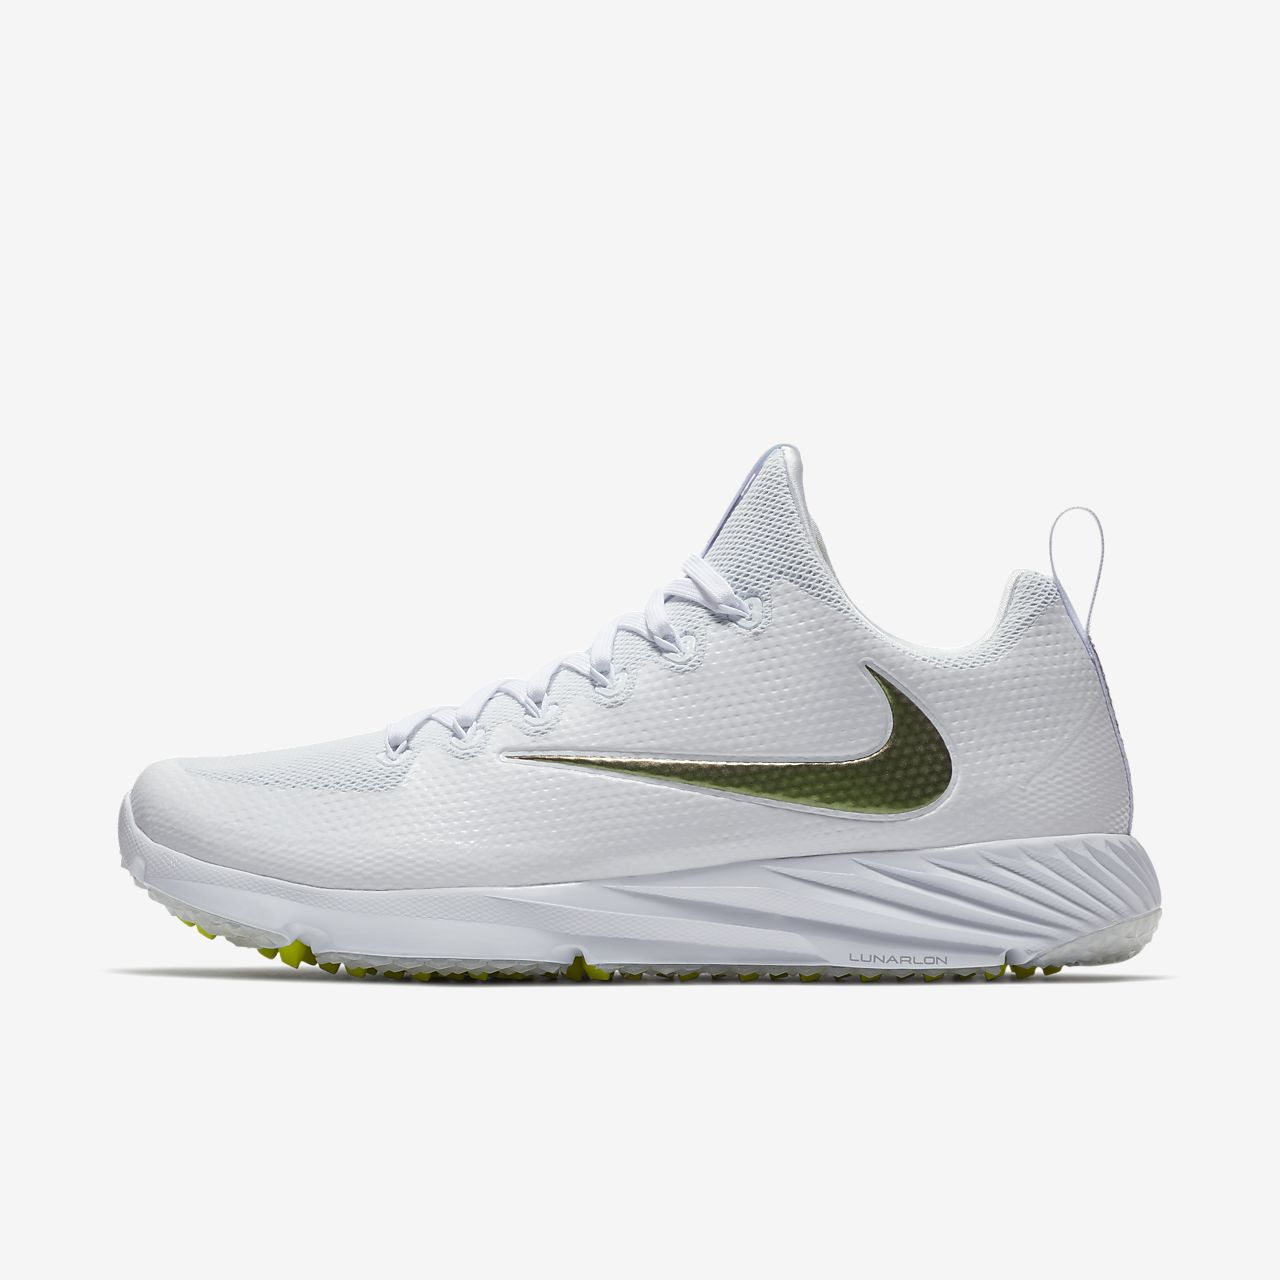 ... Nike Vapor Speed Turf Men's Training Shoe